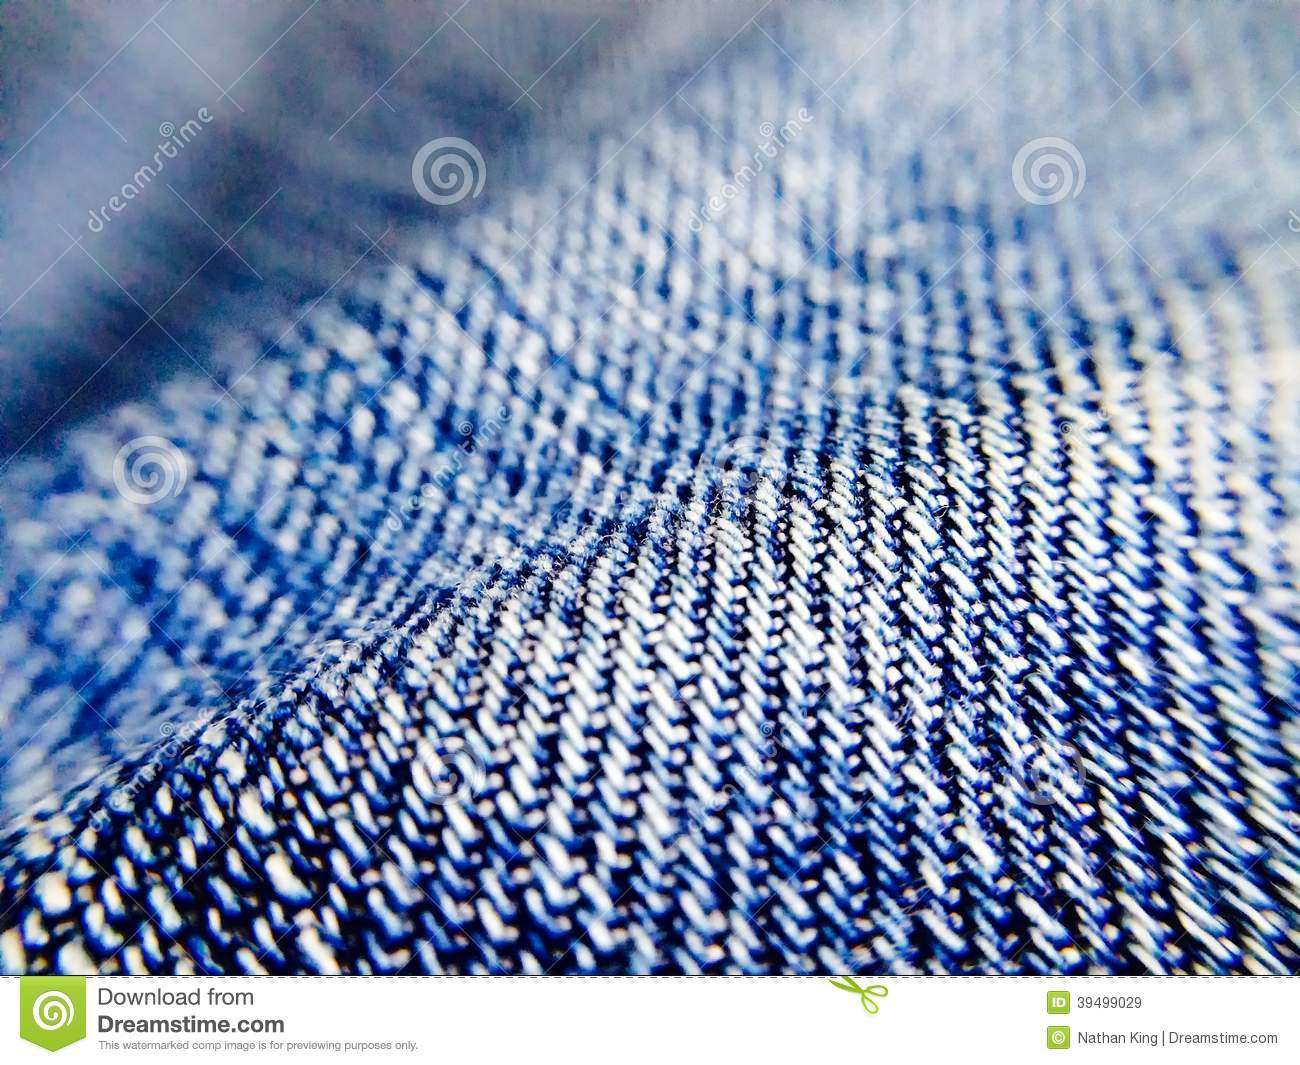 blue jean material stock image image of cloth bluejeans 39499029